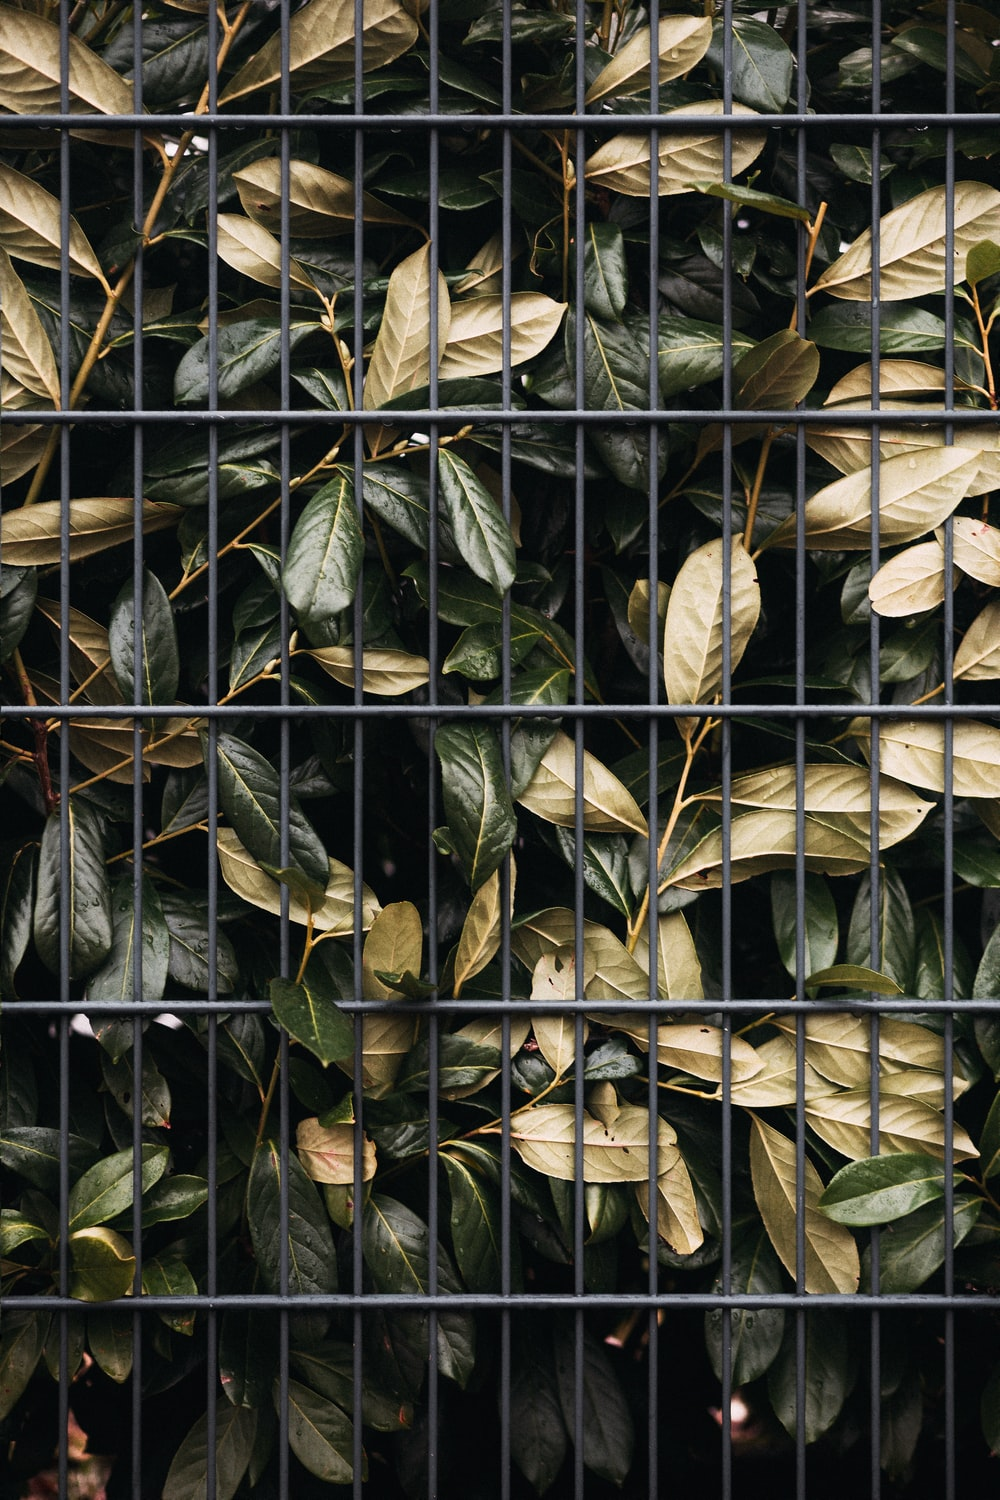 brown and green leaves on black metal fence